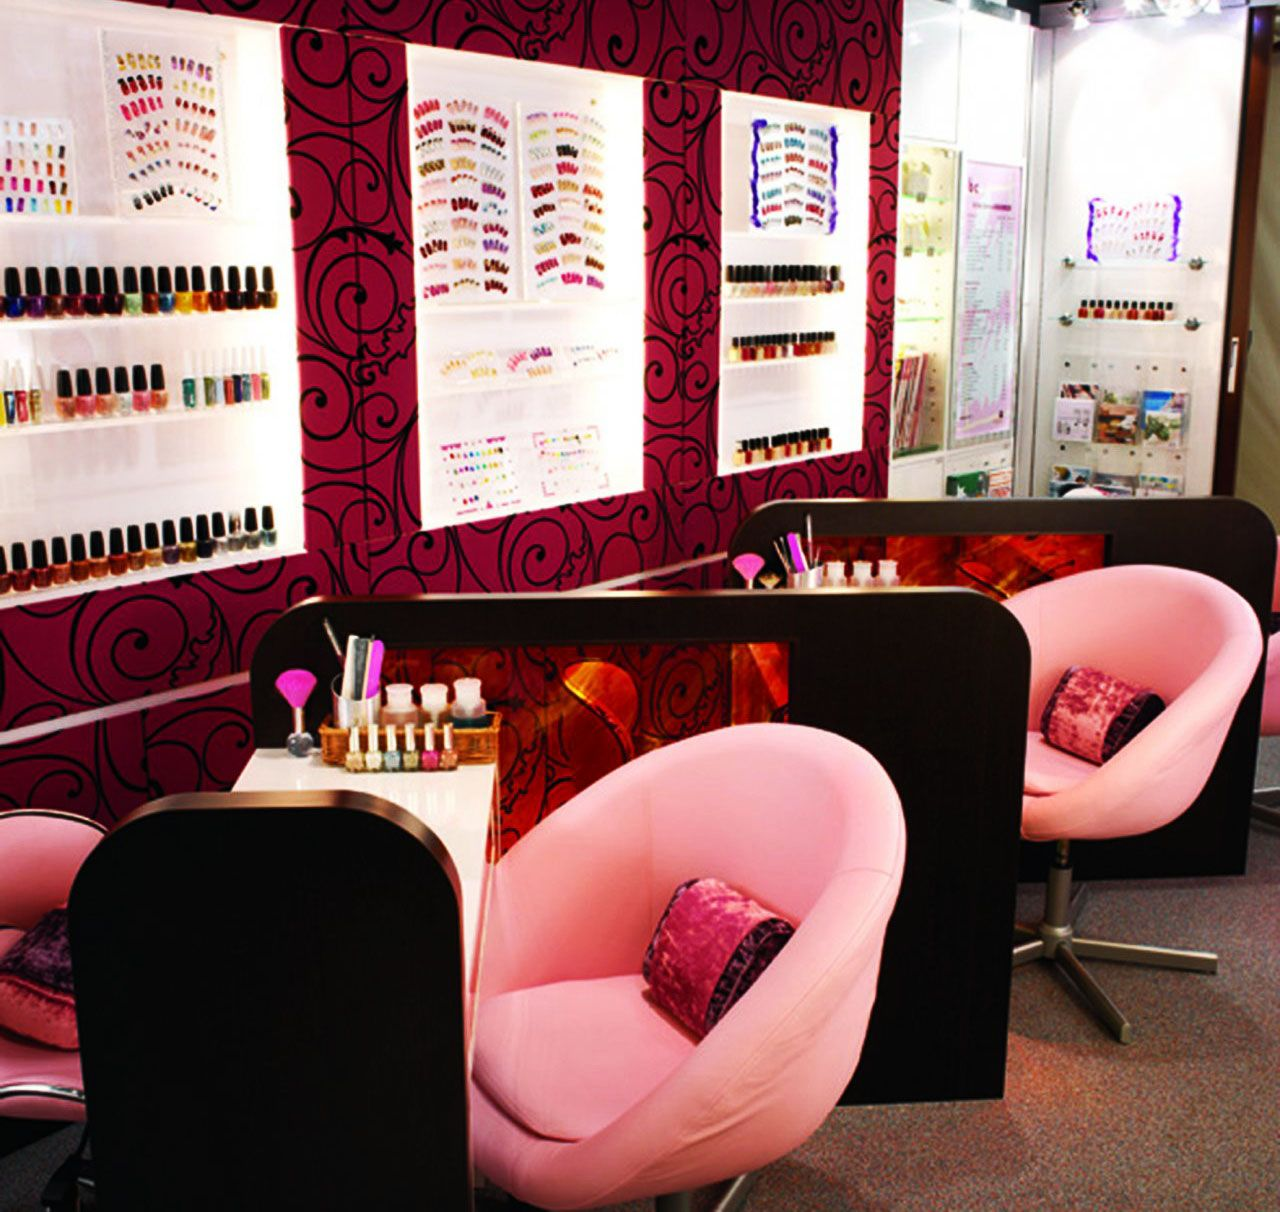 Nail Salon Design Ideas design ideas nail art nail design nail salon design nail design nail salon ideas pinterest pedicures nail design and pedicur Elegant Nails Salon Design Ideas